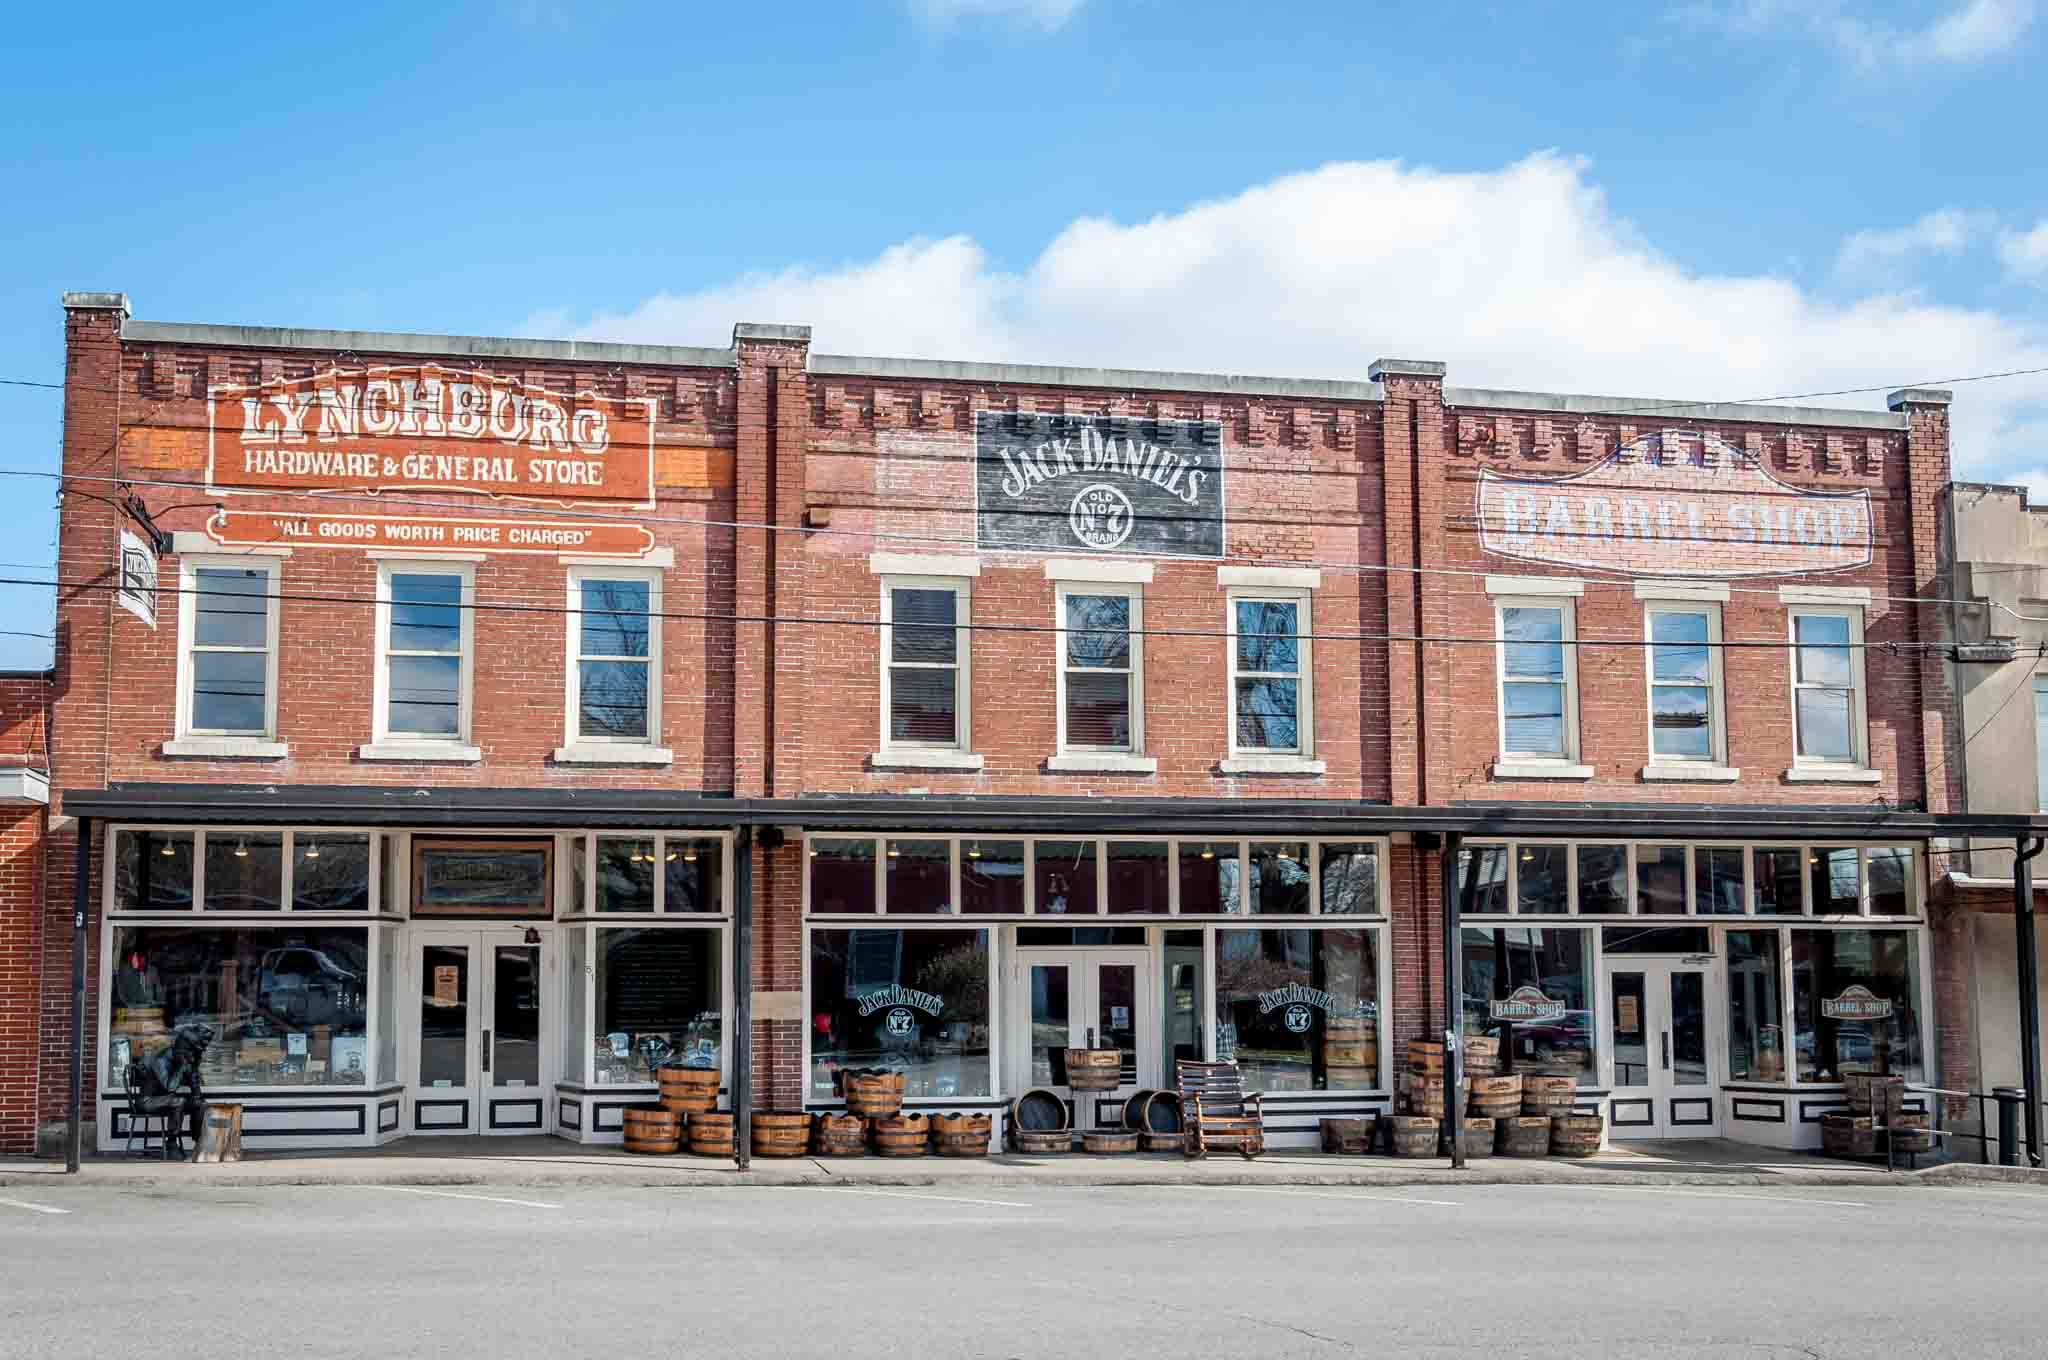 Lynchburg Hardware & General Store is the place for Jack Daniel's souvenirs